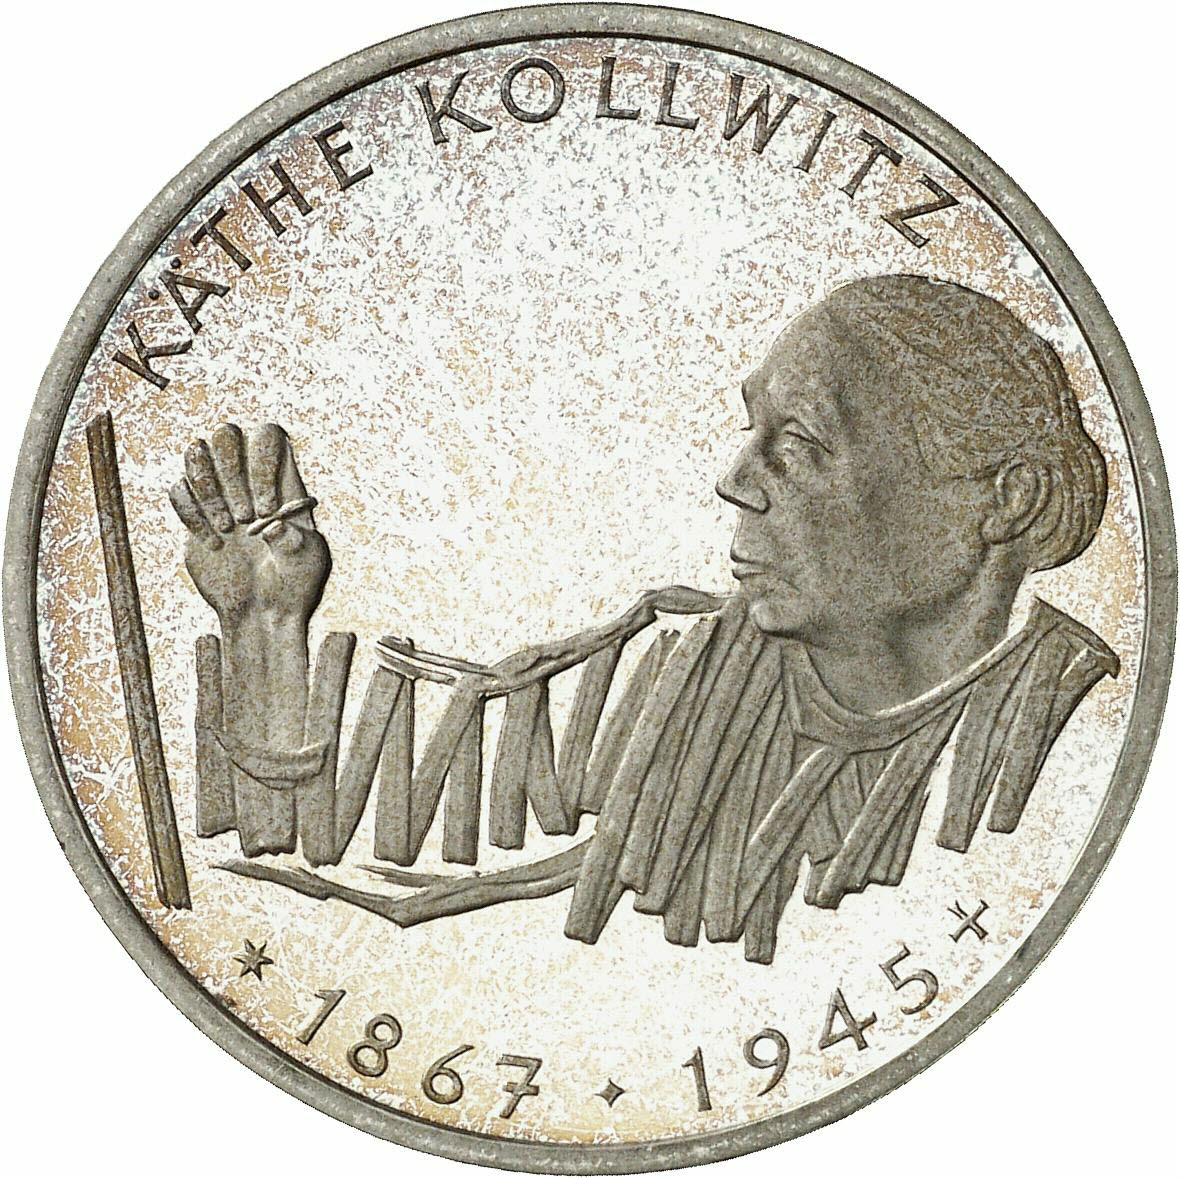 DE 10 Deutsche Mark 1992 G